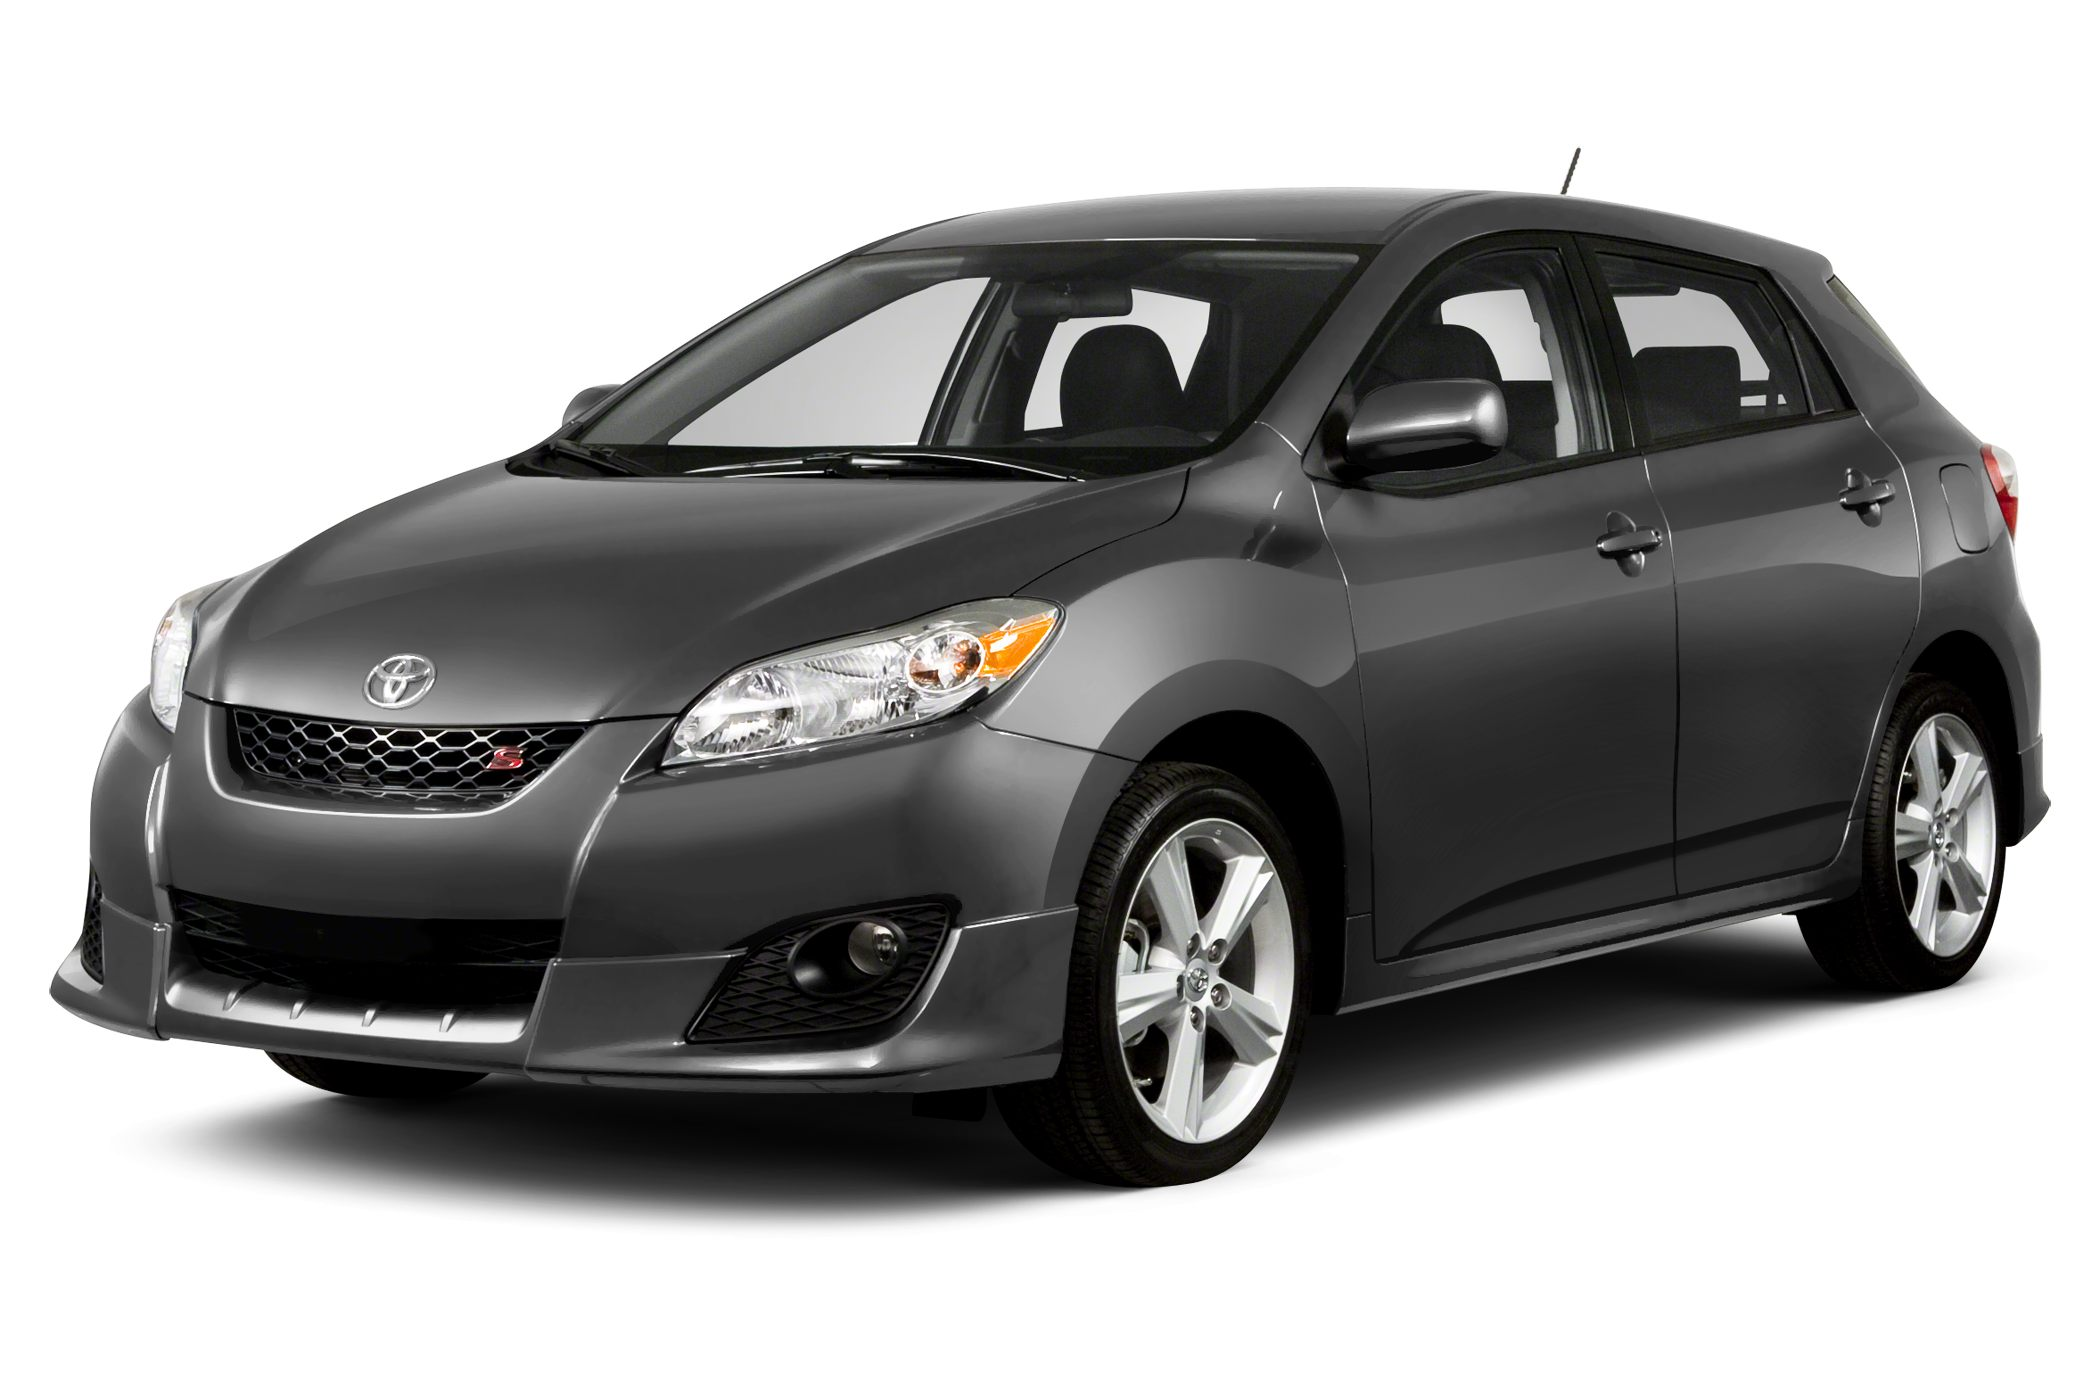 Toyota Matrix News Photos And Buyingrmation Autoblog HD Wallpapers Download free images and photos [musssic.tk]